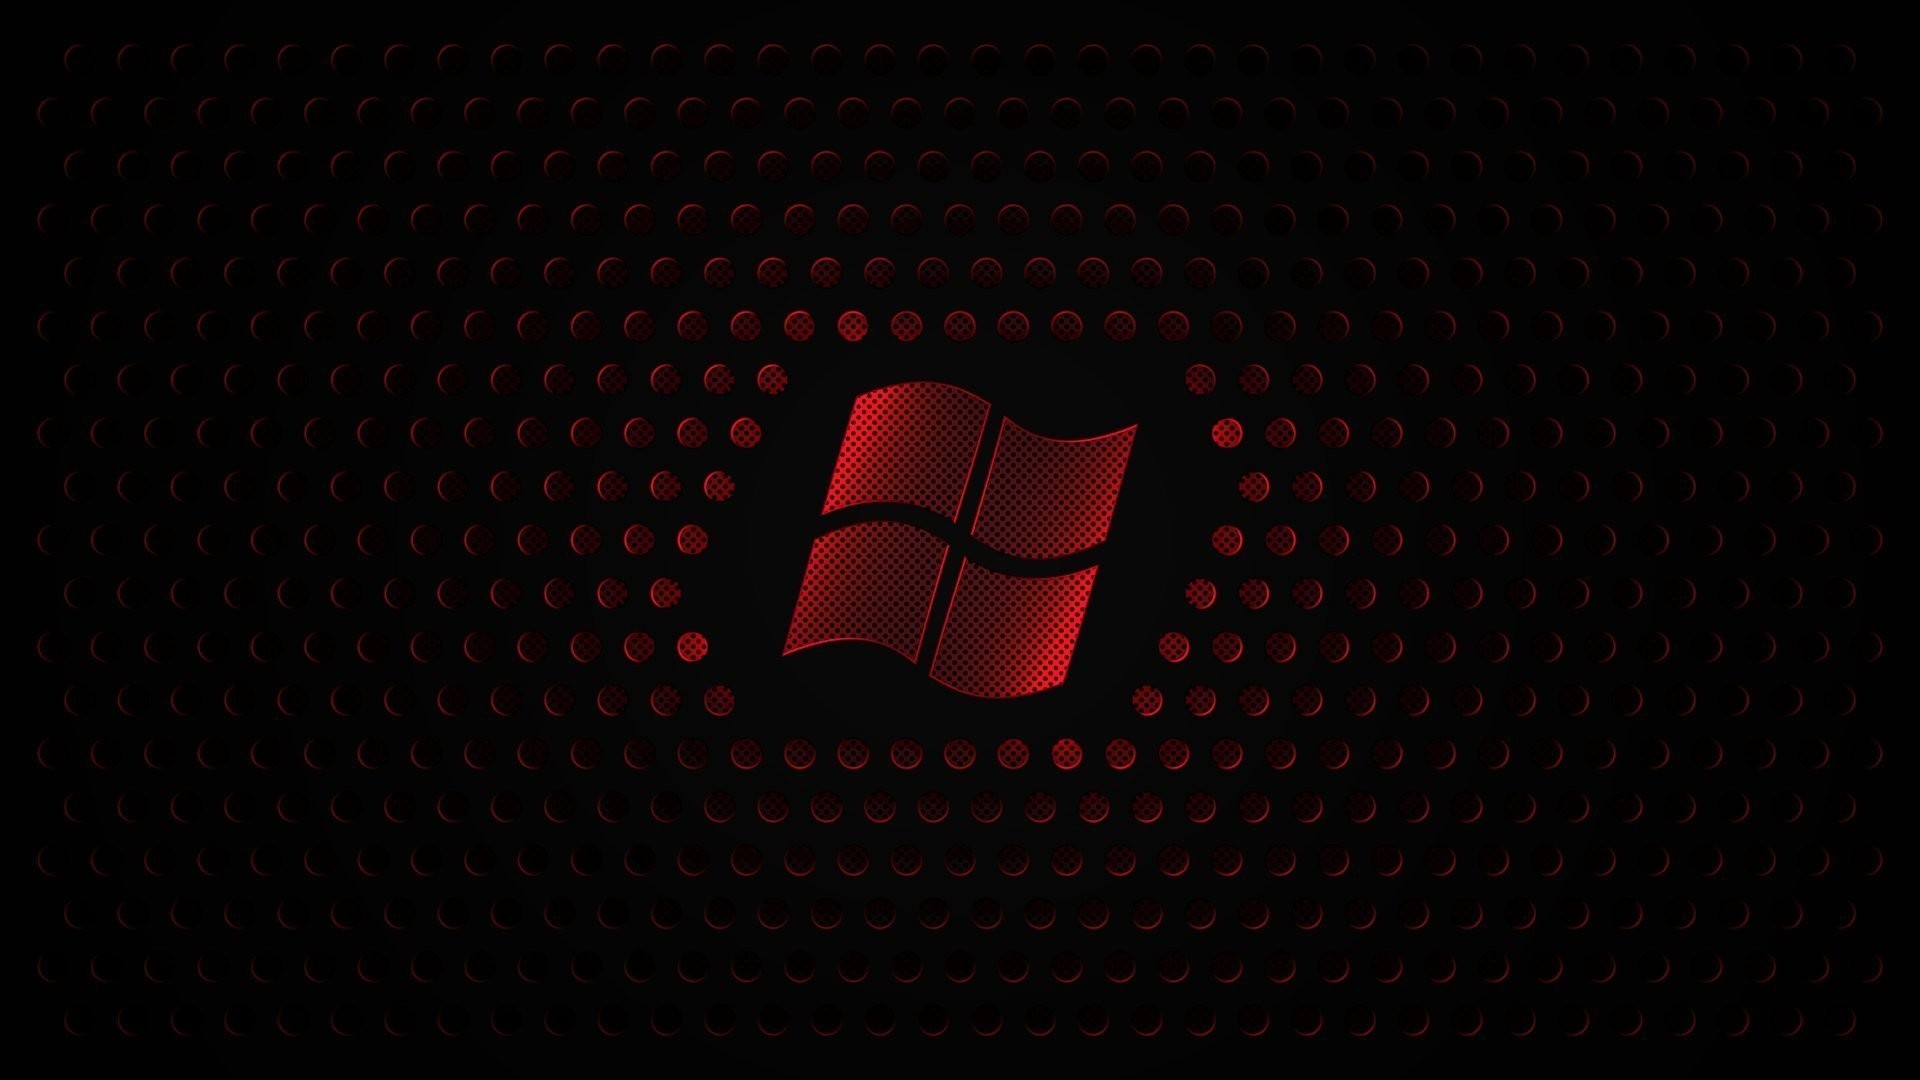 1920x1080 Windows Awesome Wallpapers Page Windows 7 Red Wallpapers Wallpapers)